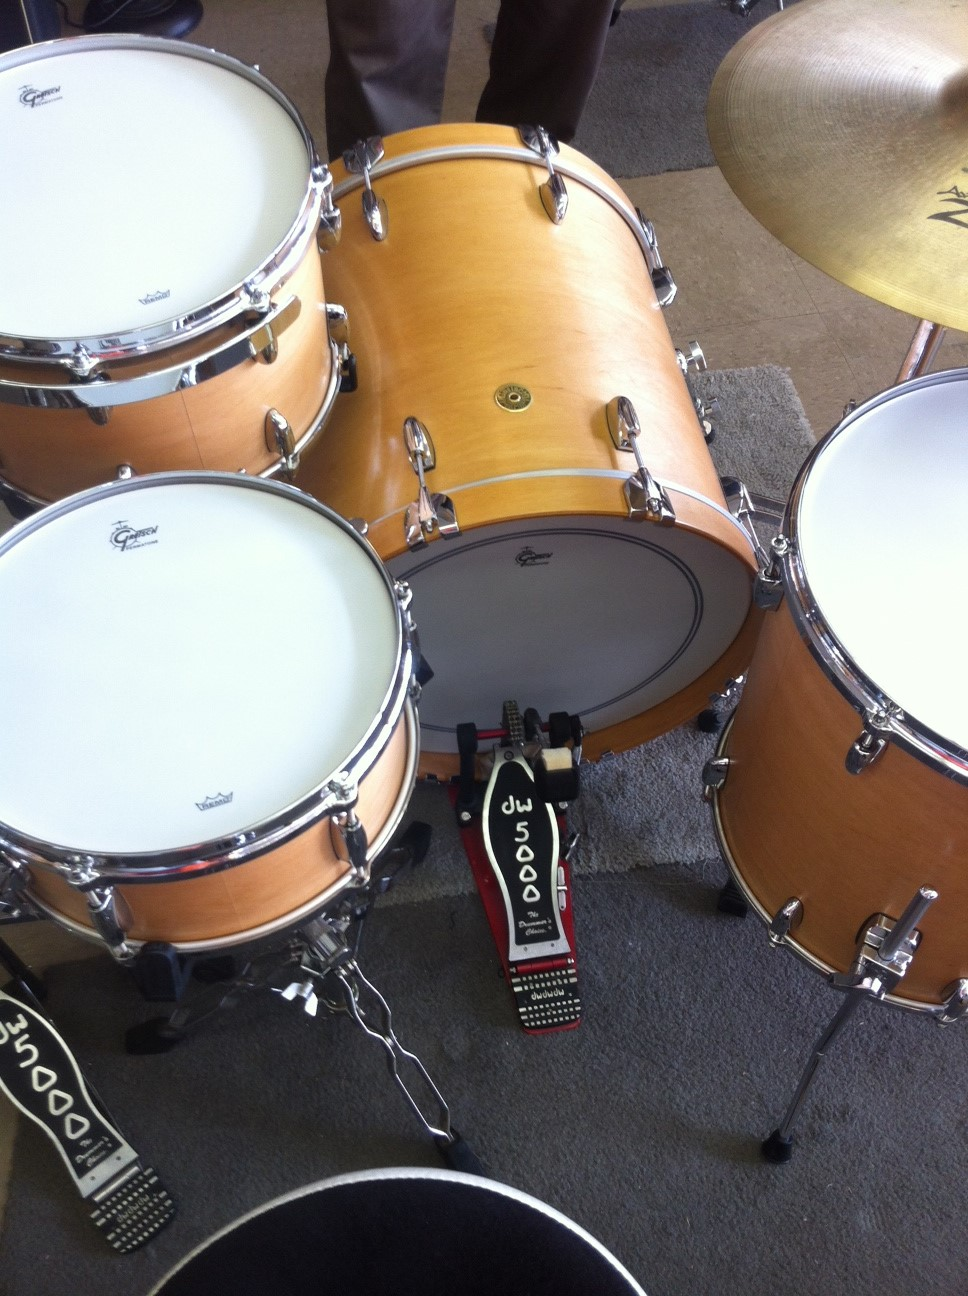 Gretsch USA Custom kit back